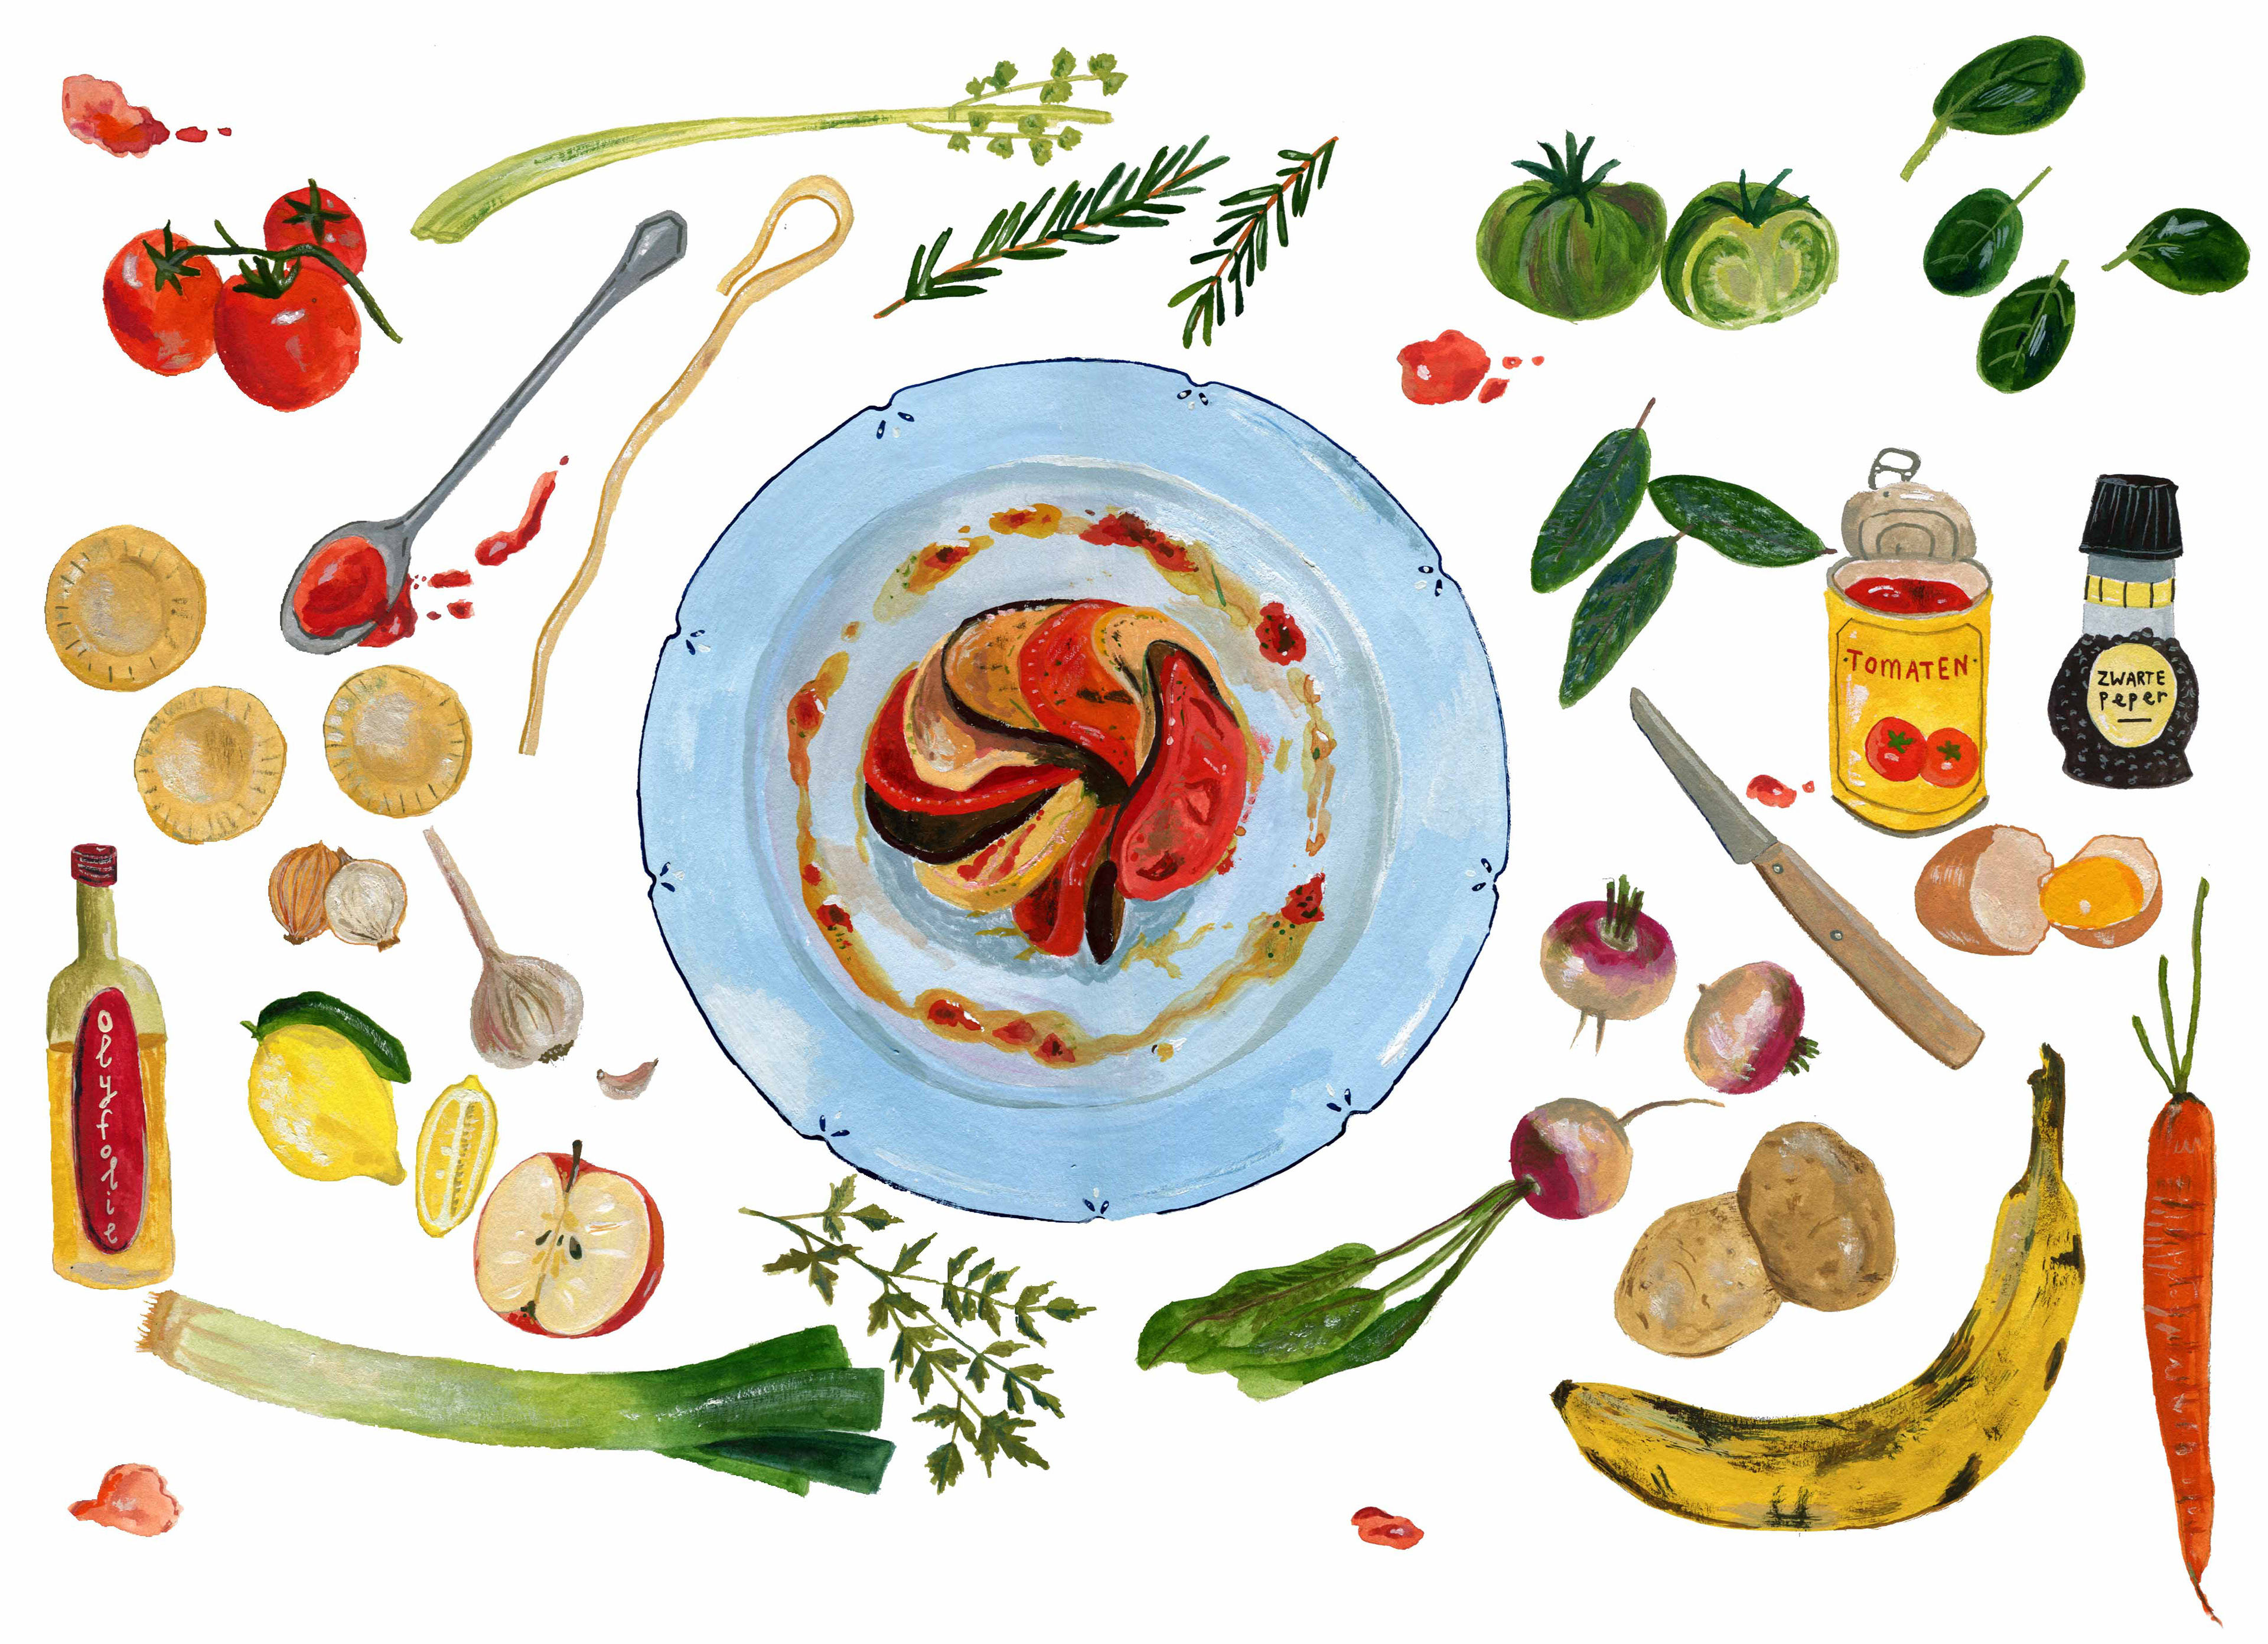 Anke knapper vegetarian food for de volkskrant illustration for an article about the dutch national week without meat with vegetarian recipes forumfinder Images